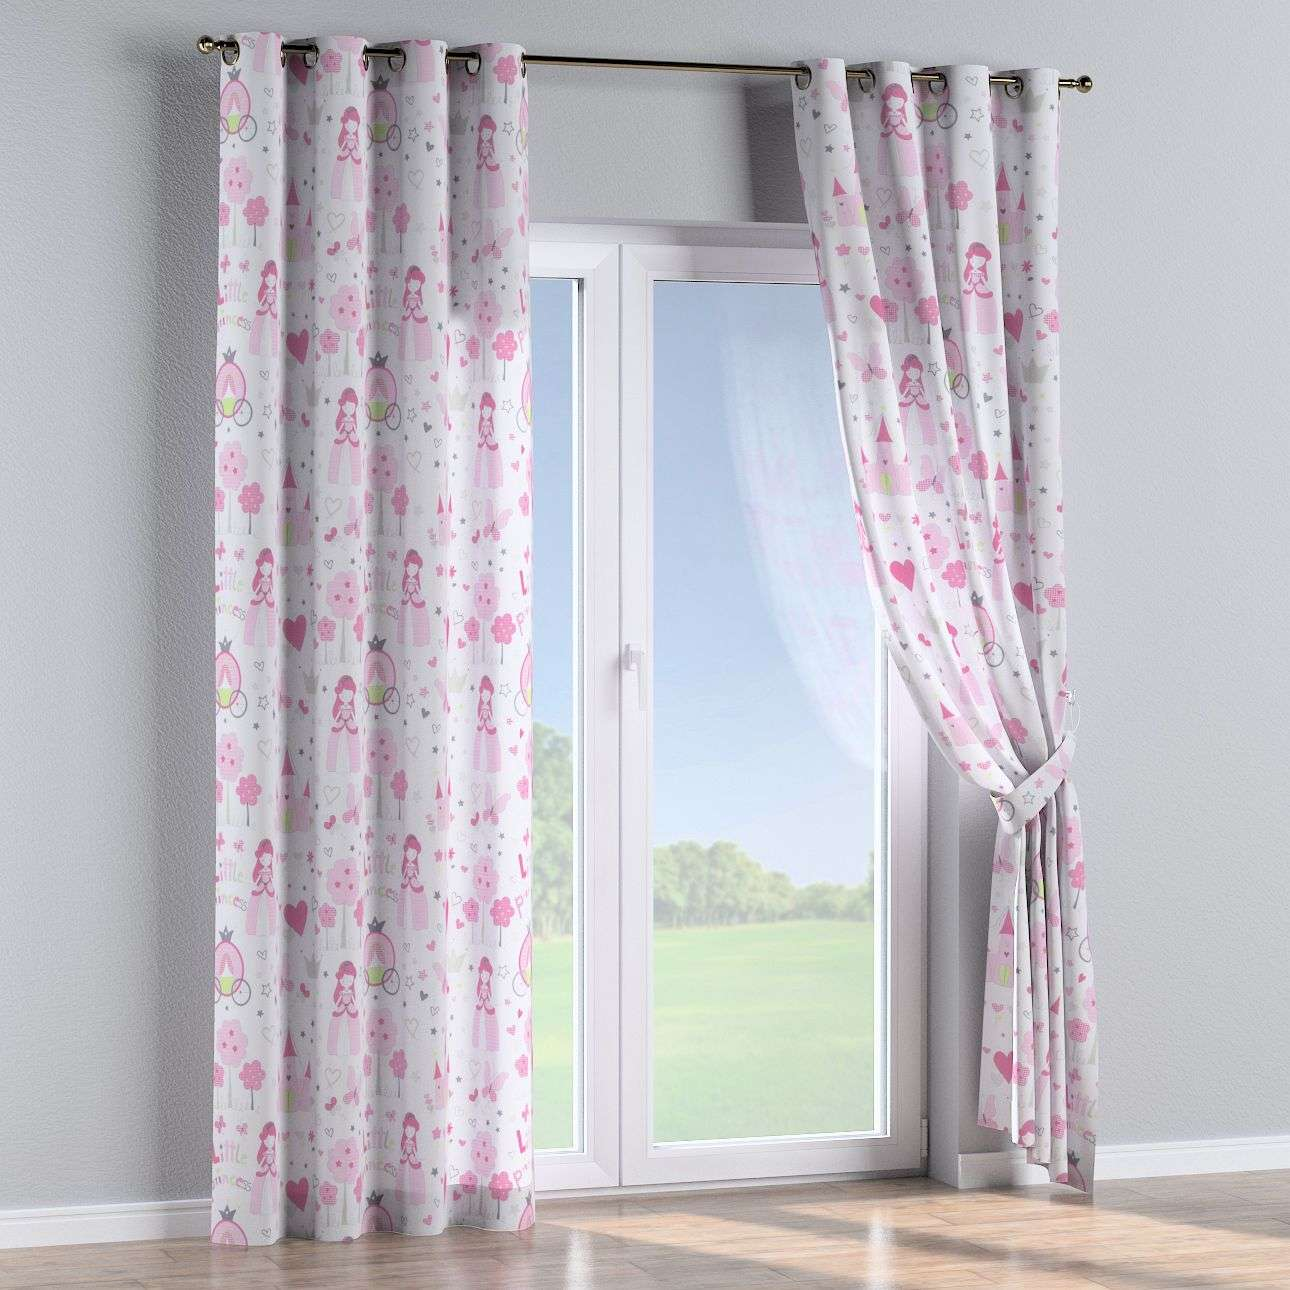 Eyelet curtains 130 x 260 cm (51 x 102 inch) in collection Little World, fabric: 141-28